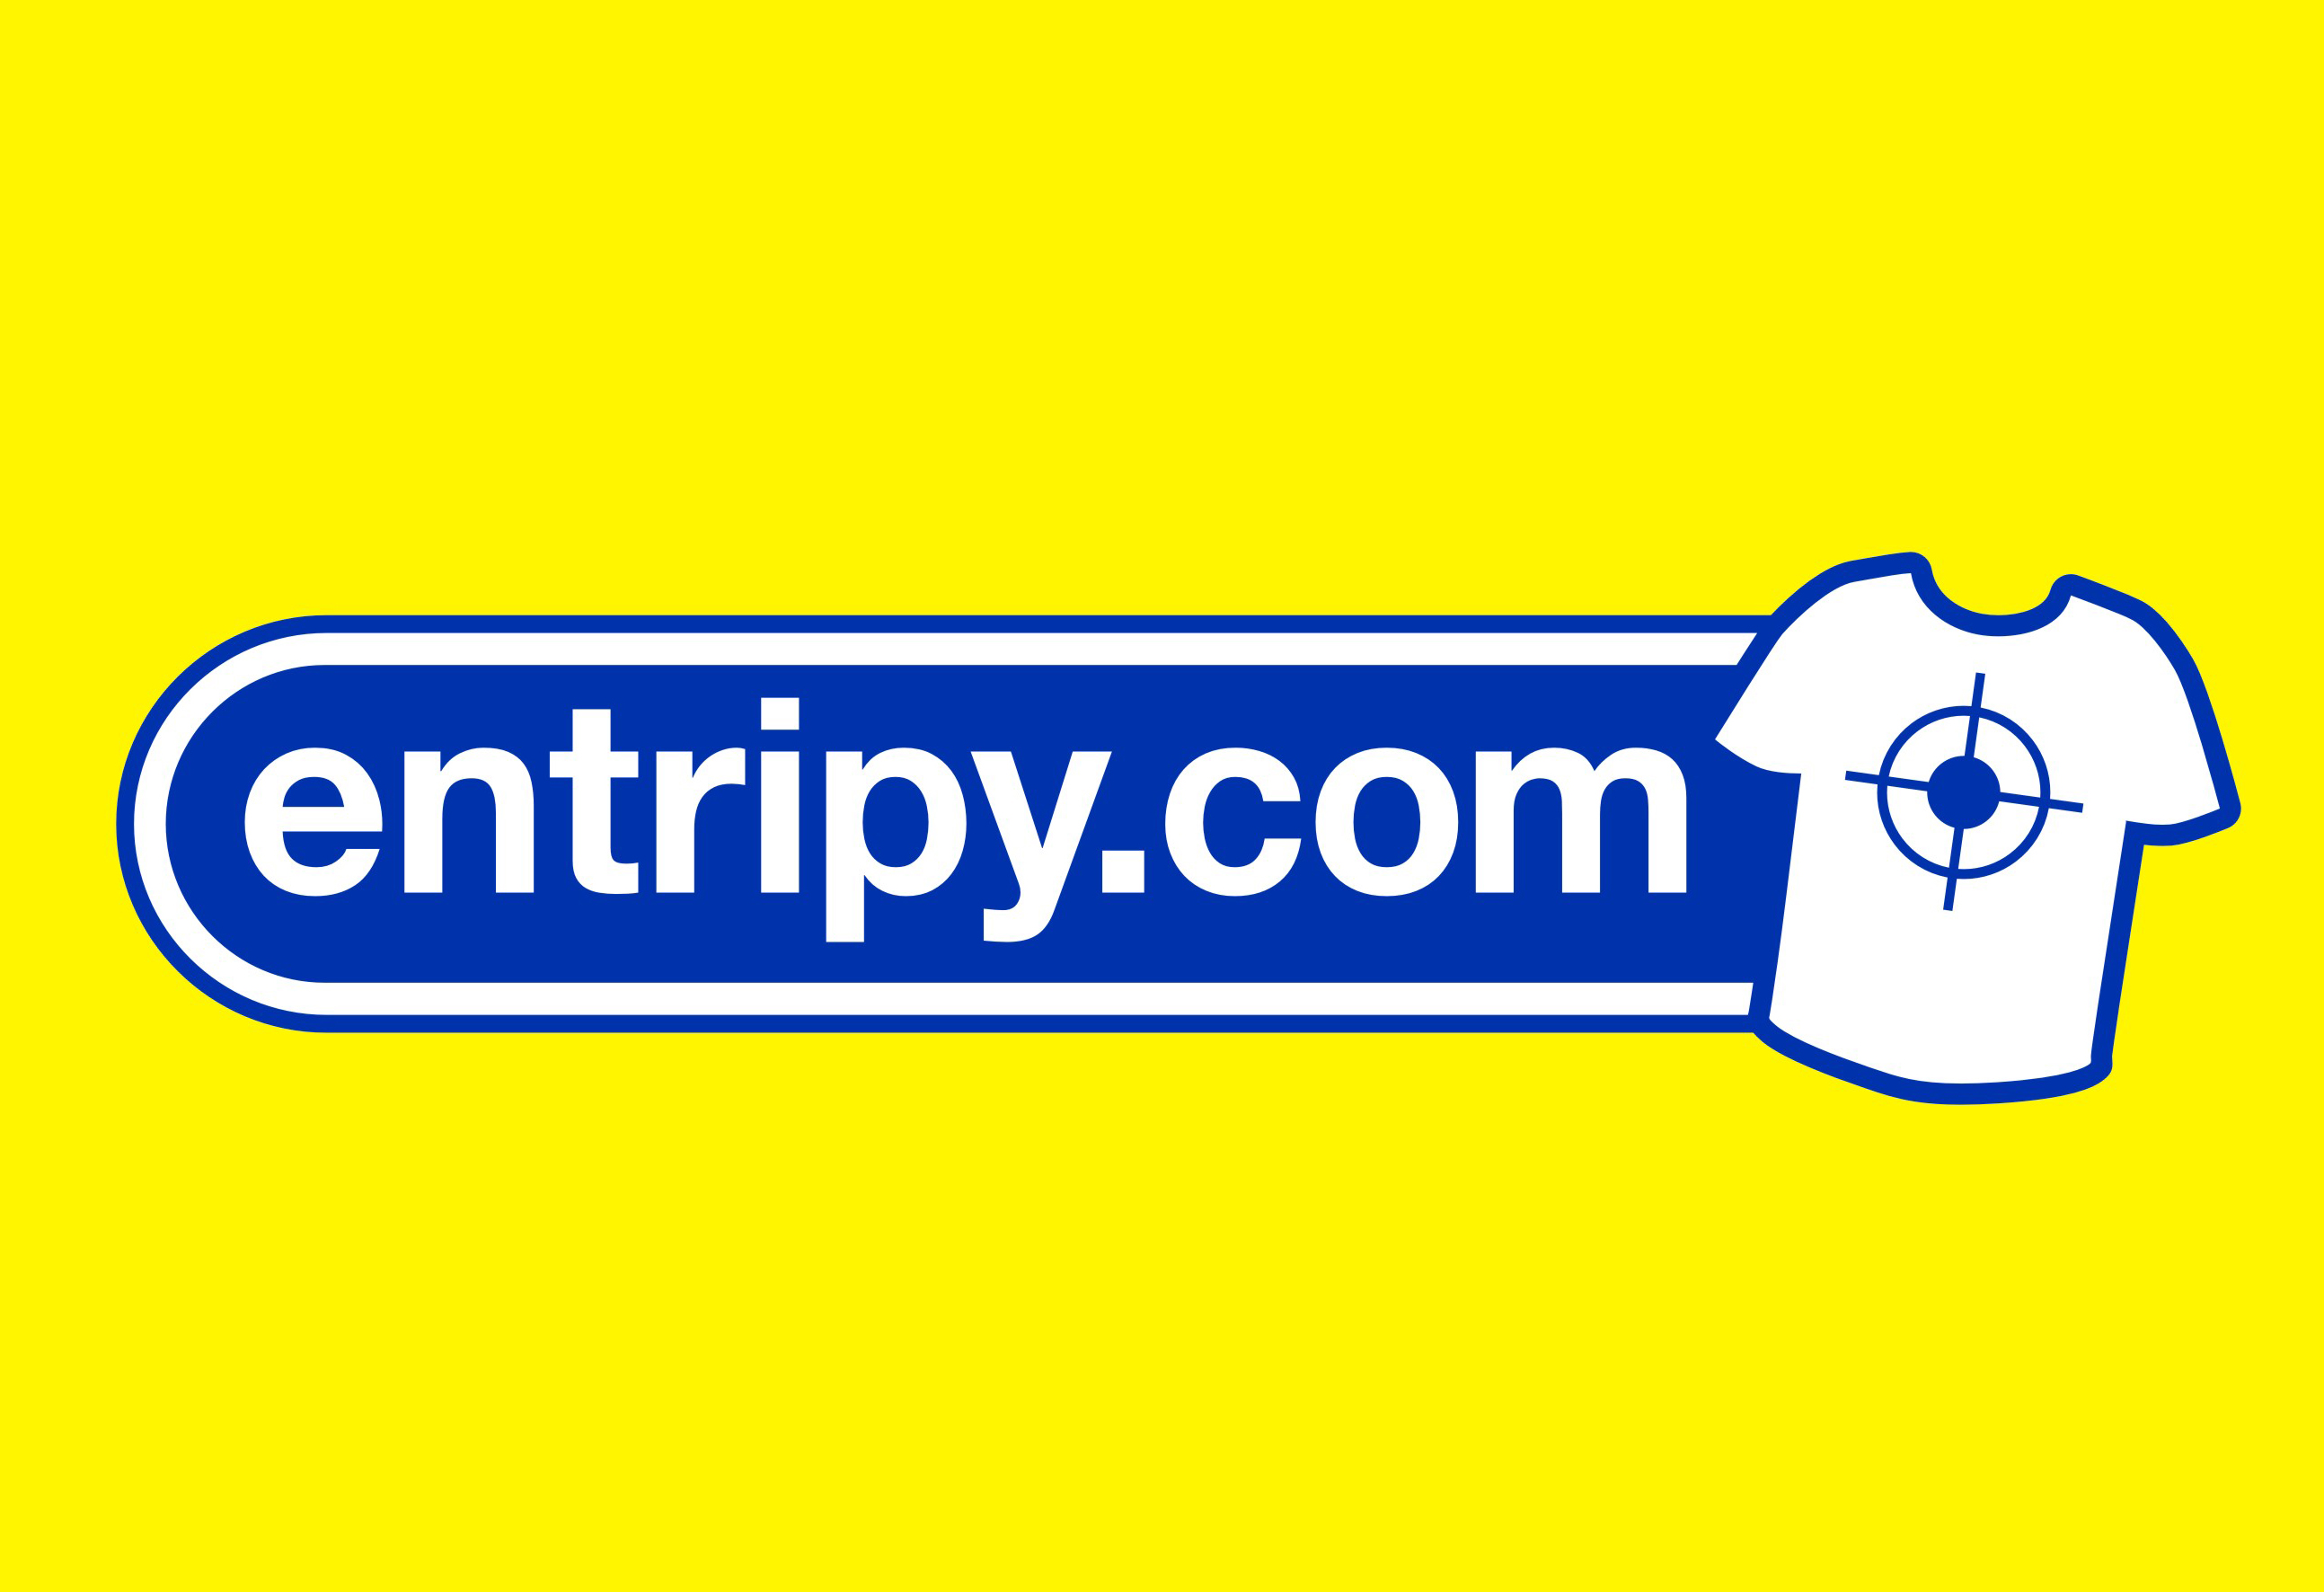 Entripy Custom Clothing logo.